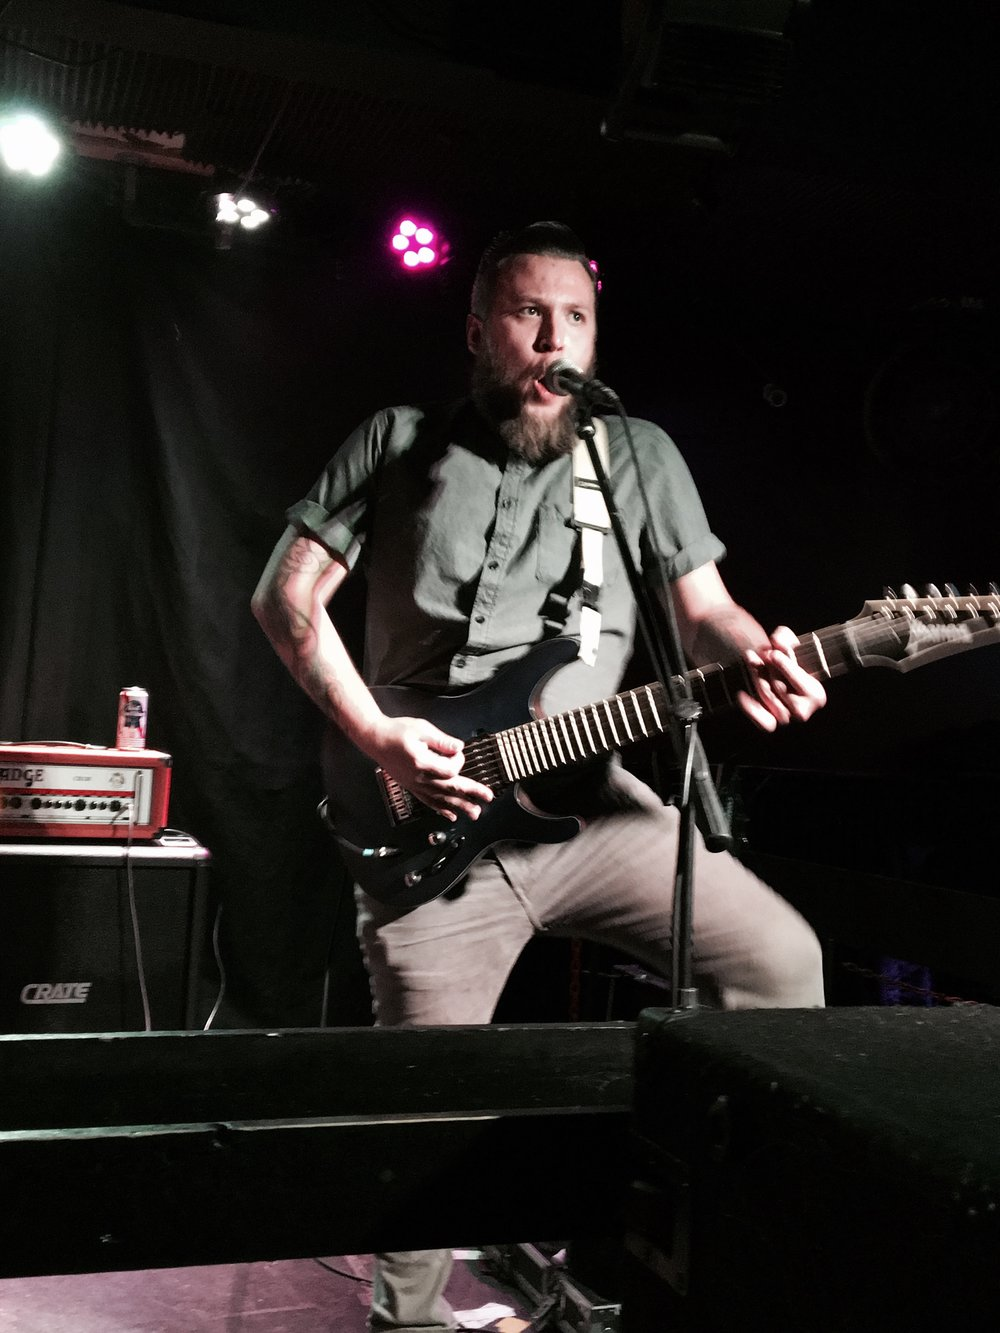 Gig life - The best of them all was when Miles'band opened up for one of their biggest influences, Streetlight Manifesto.